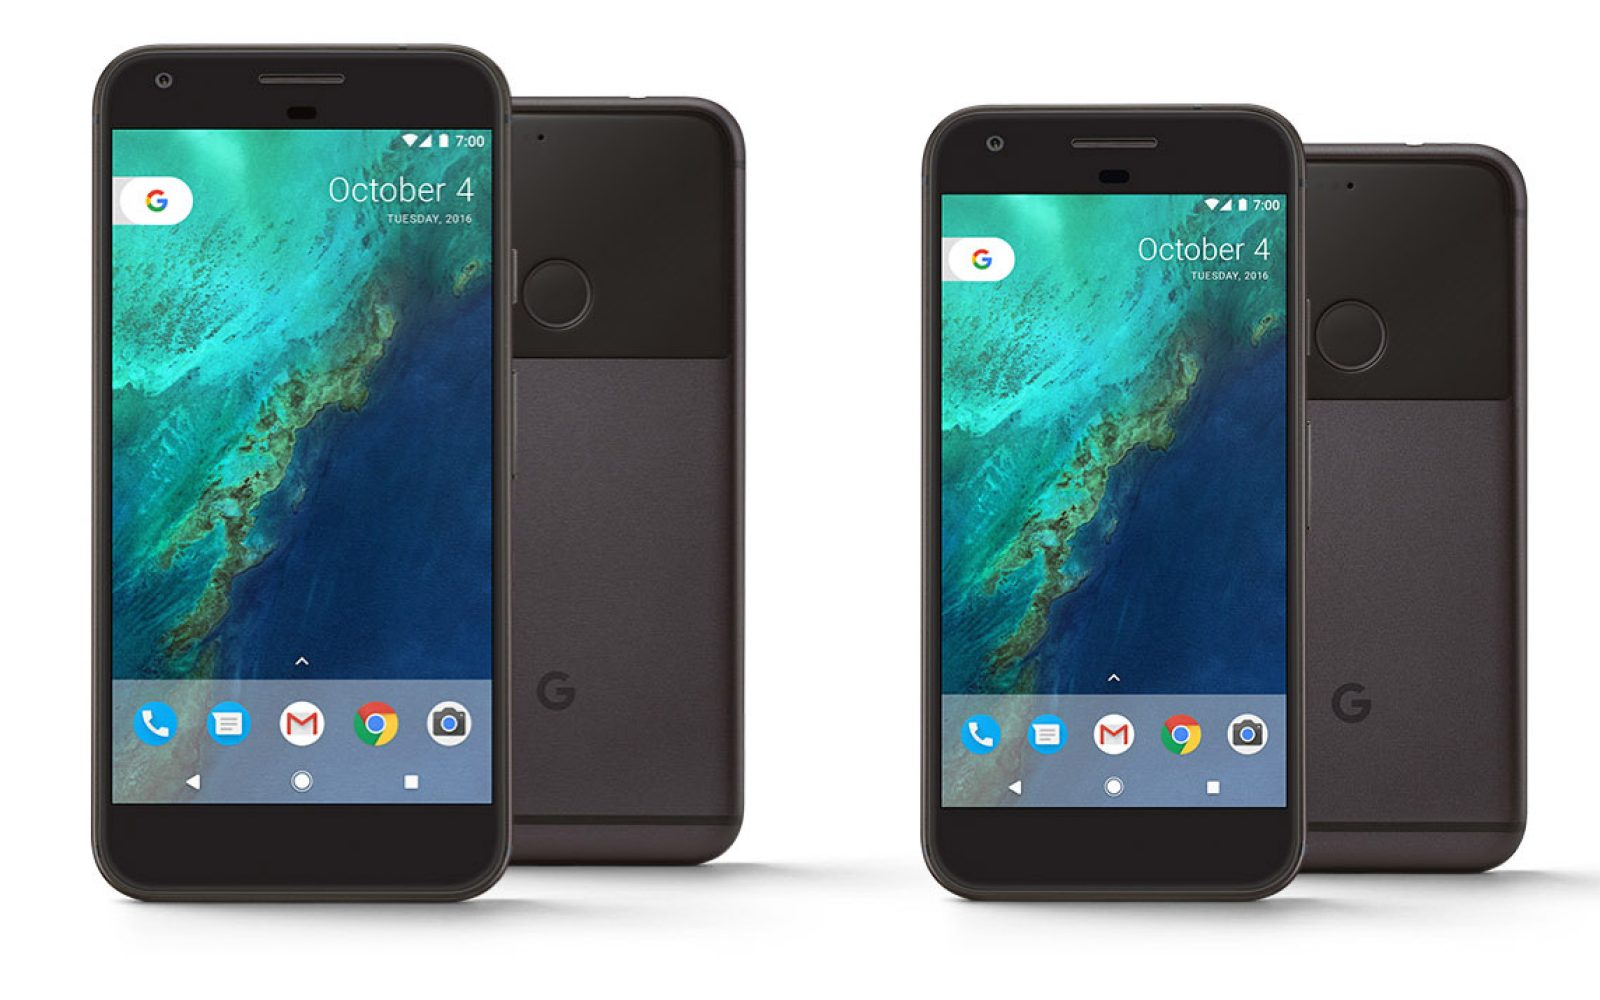 Google confirms: you will be able to root your Pixel phone